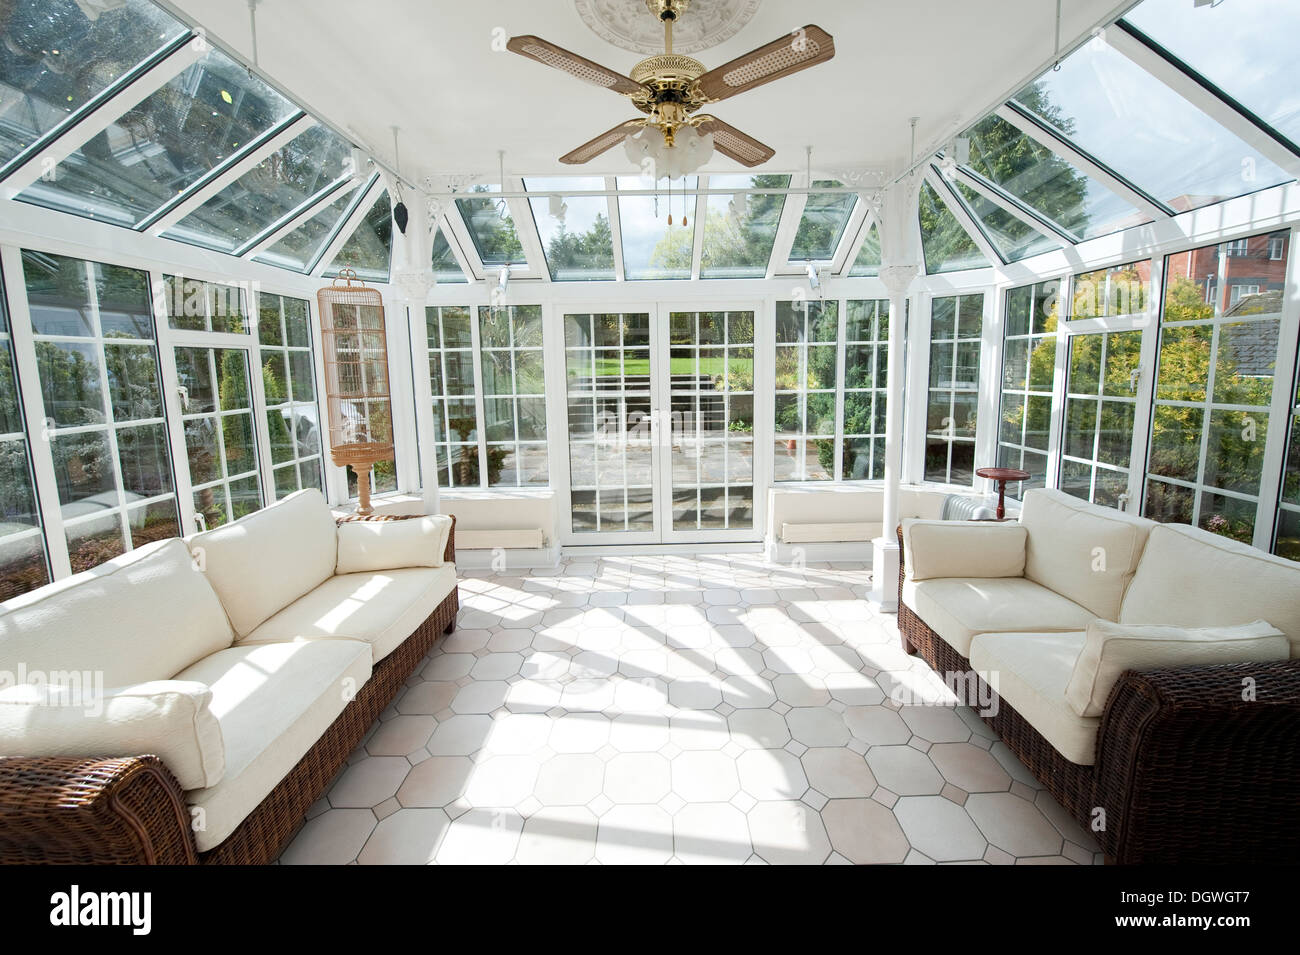 Conservatory Extension Stock Photos & Conservatory Extension Stock ...